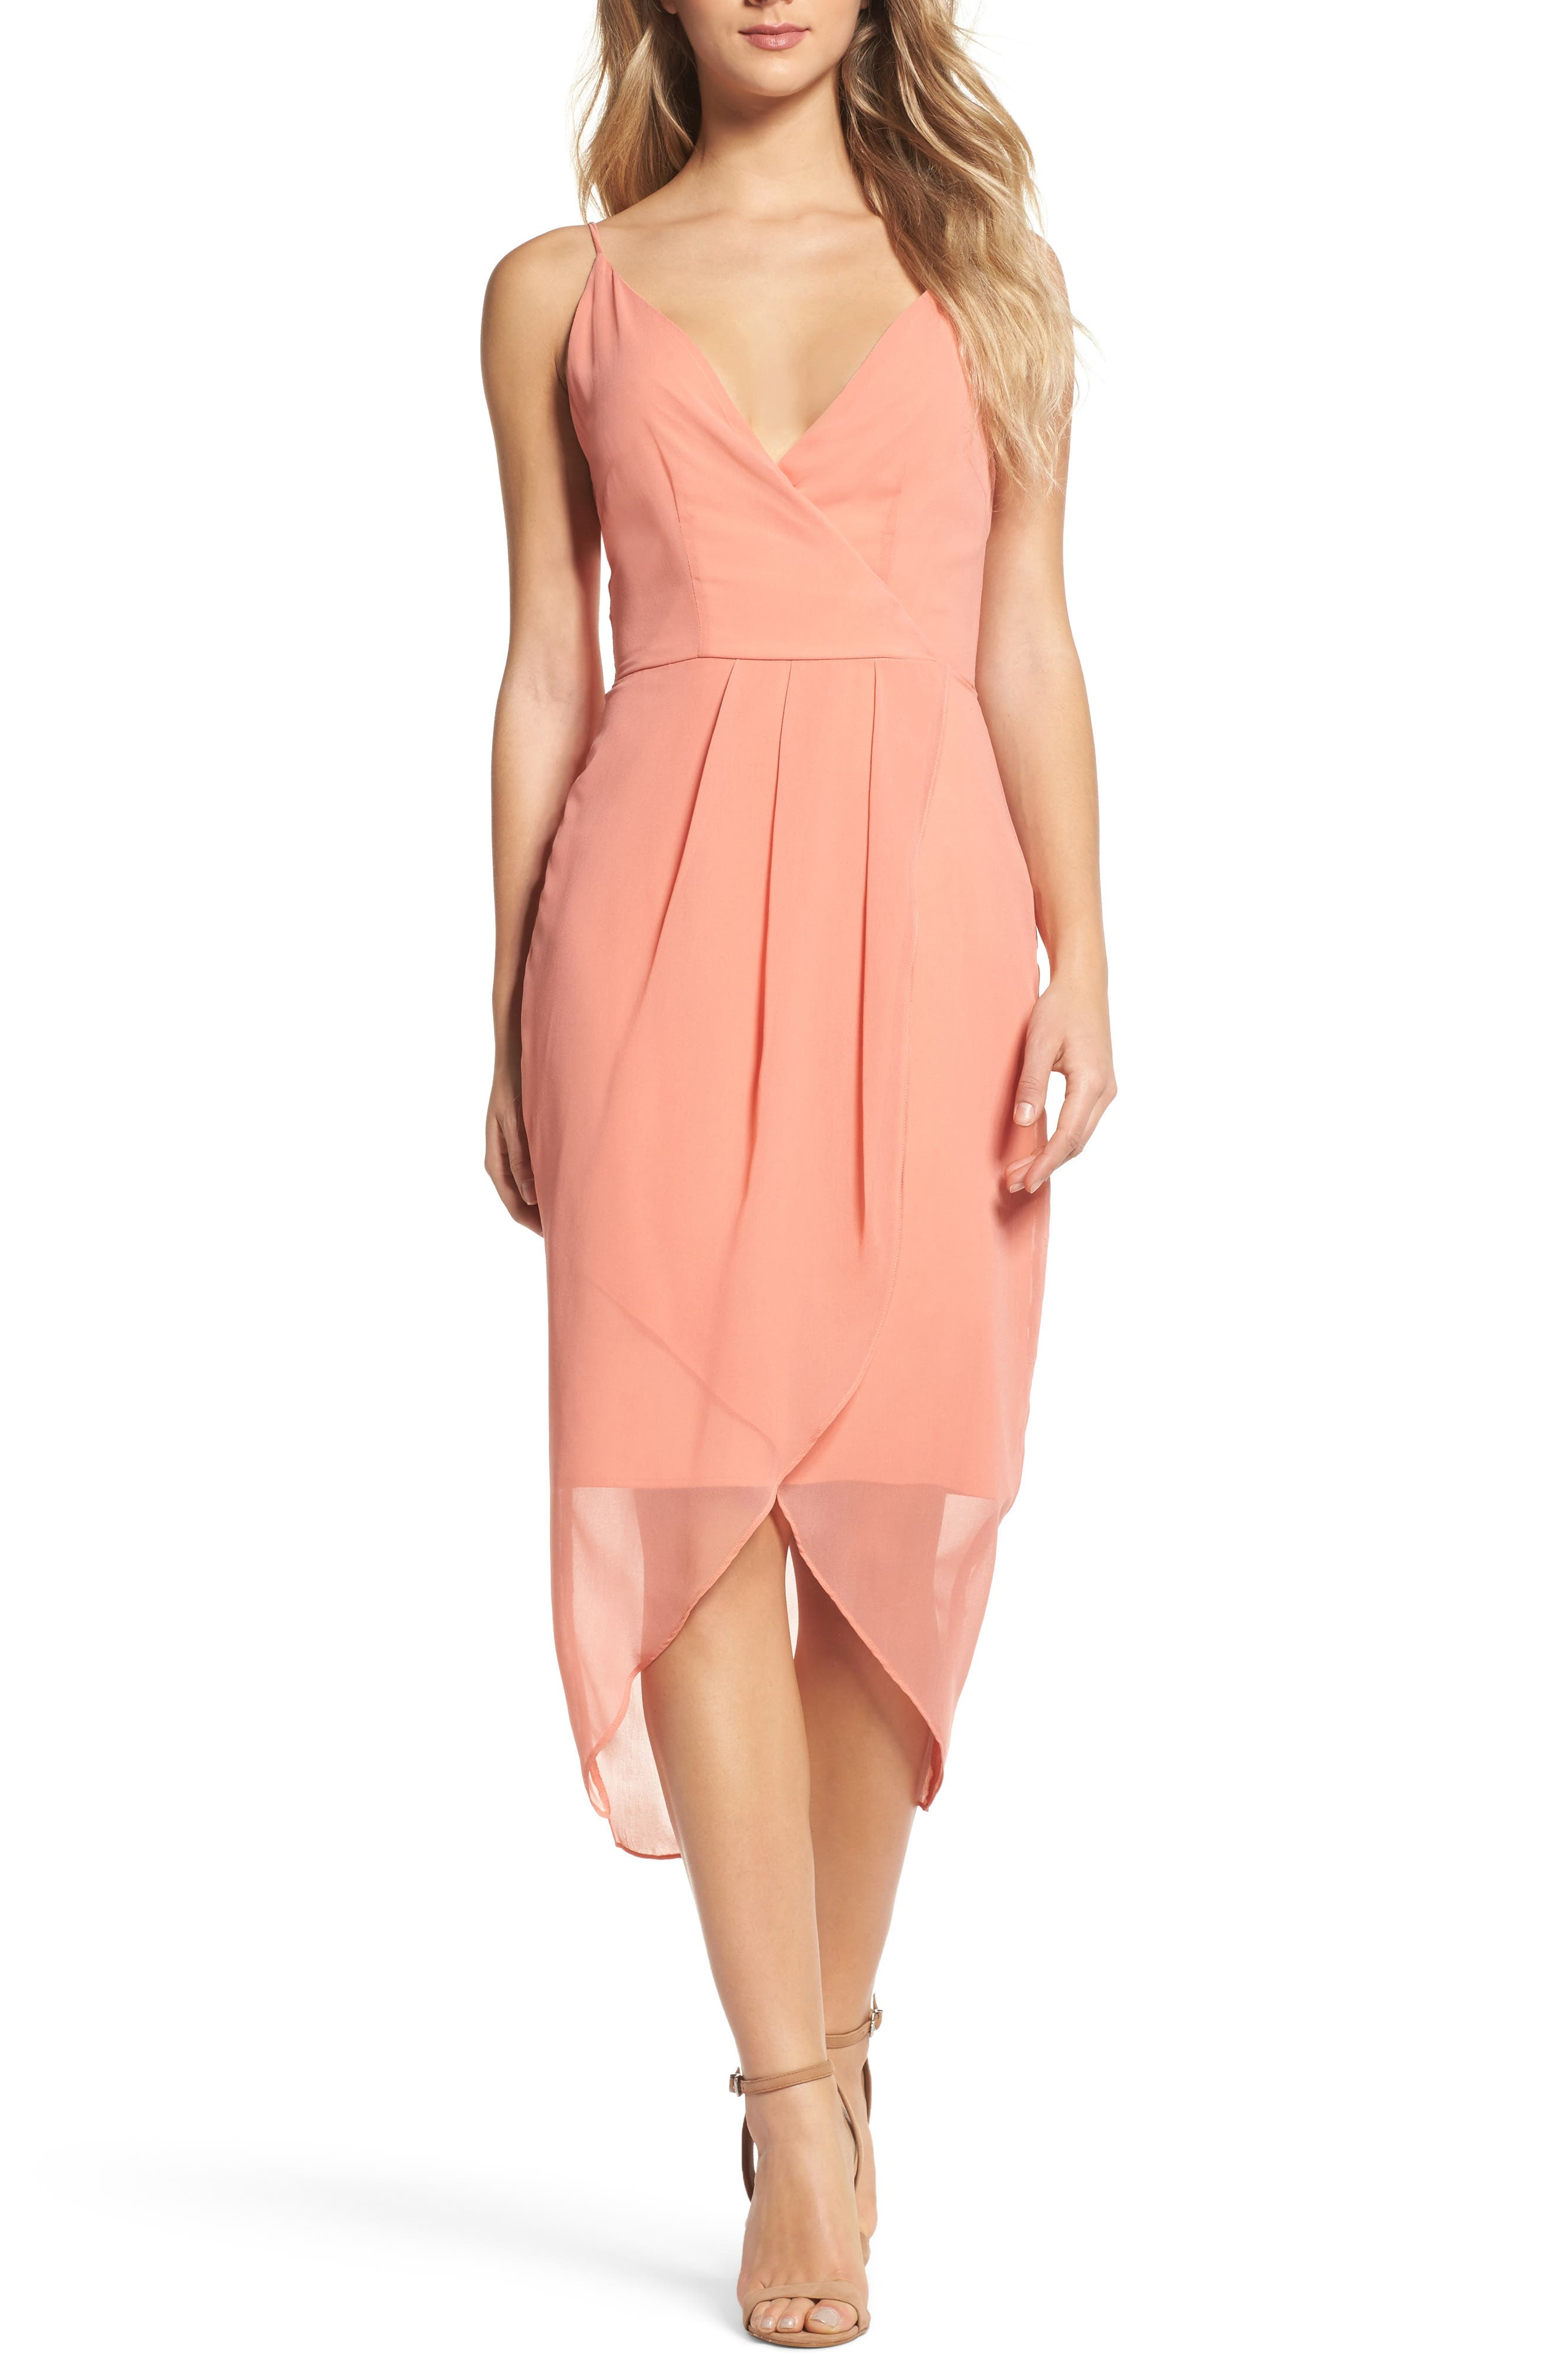 Flame of the Forest Midi Dress,                             Main thumbnail 1, color,                             680